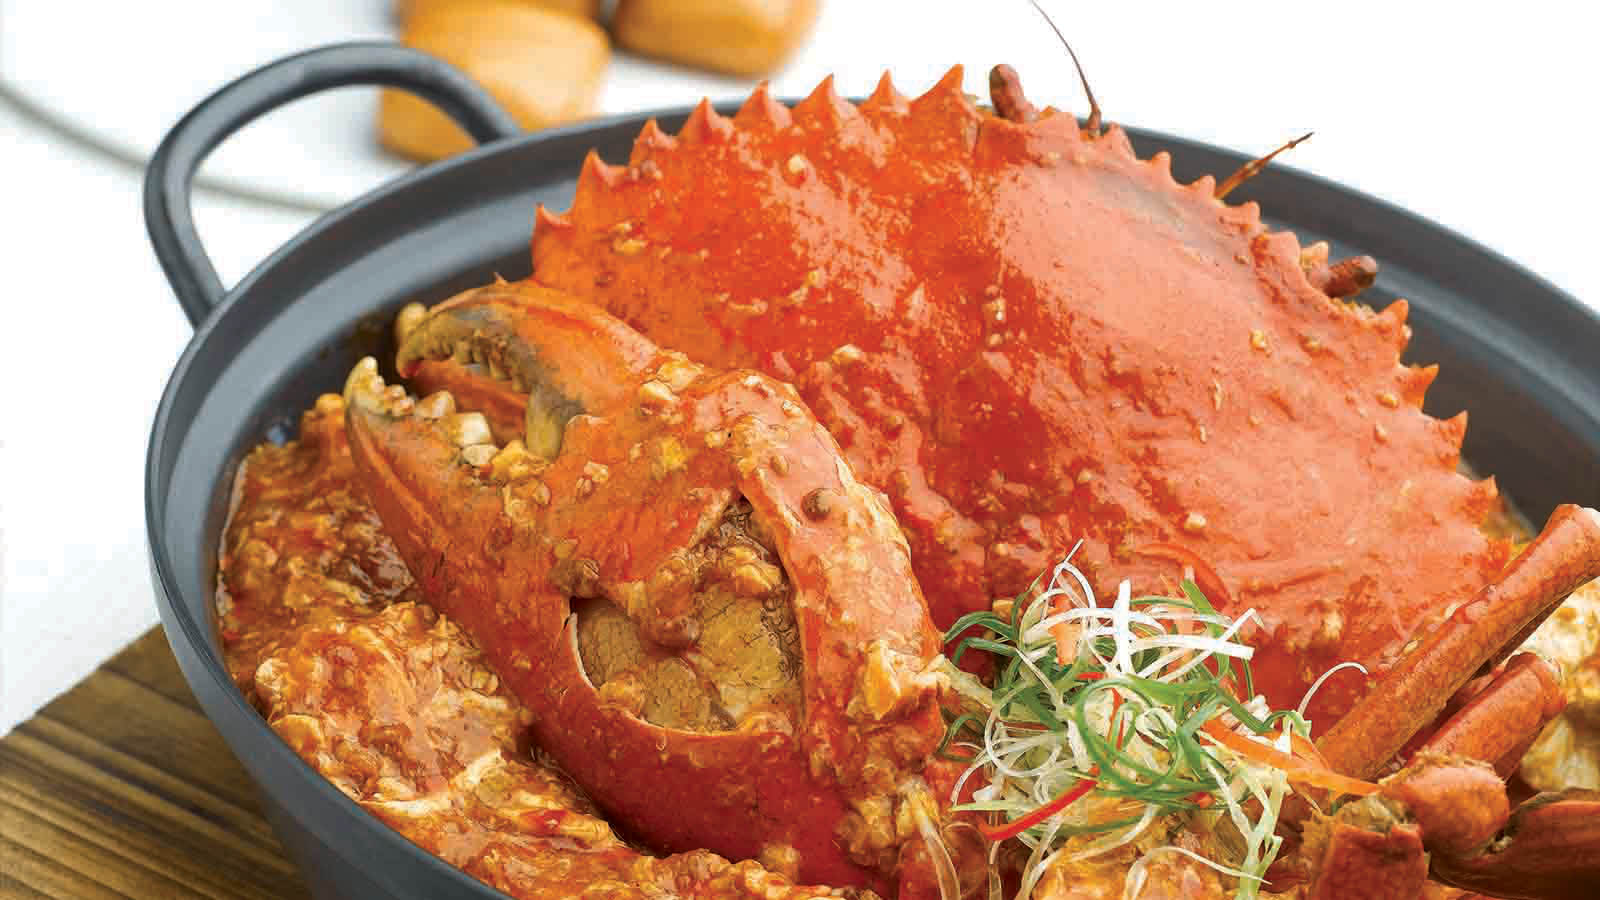 Jumbo, Seafood, Singapore, Restaurant, Chili, Crab